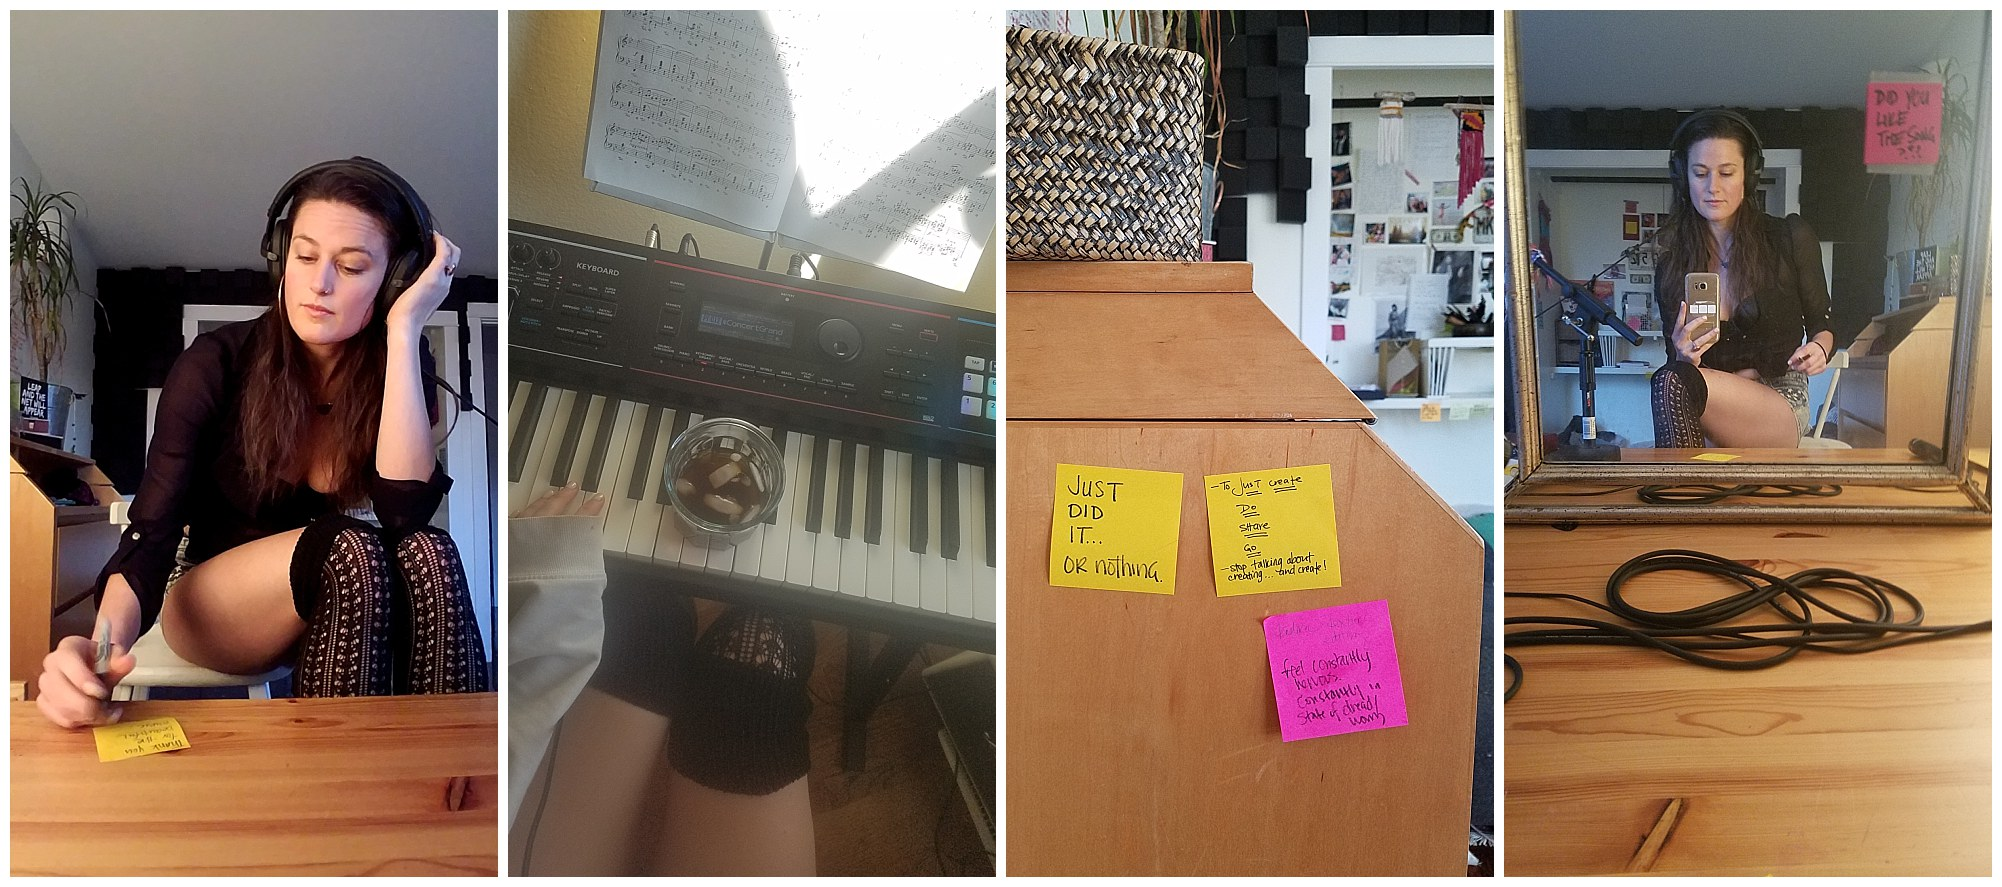 cha wilde - writing music - post it notes